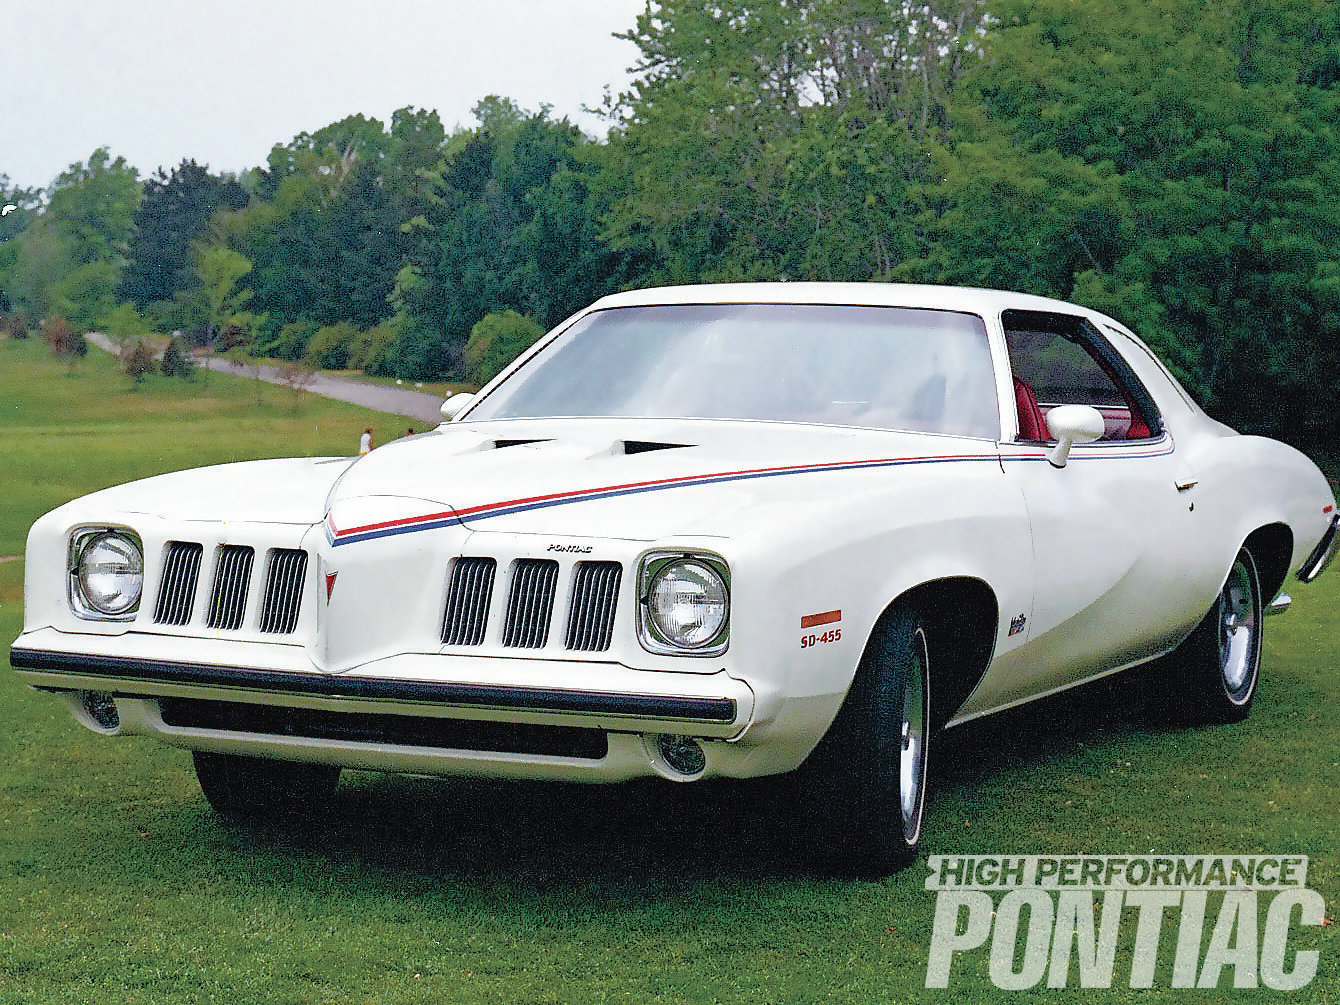 Heralded in Pontiac sales literature as classically styled with ride-and-handling improvements, the '73 Grand Am contained a very distinctive front-end treatment, a look that Pontiac Chief Designer Bill Porter was after. Constructed of soft rubber, the nose was quite pliable and resisted dings and dents.